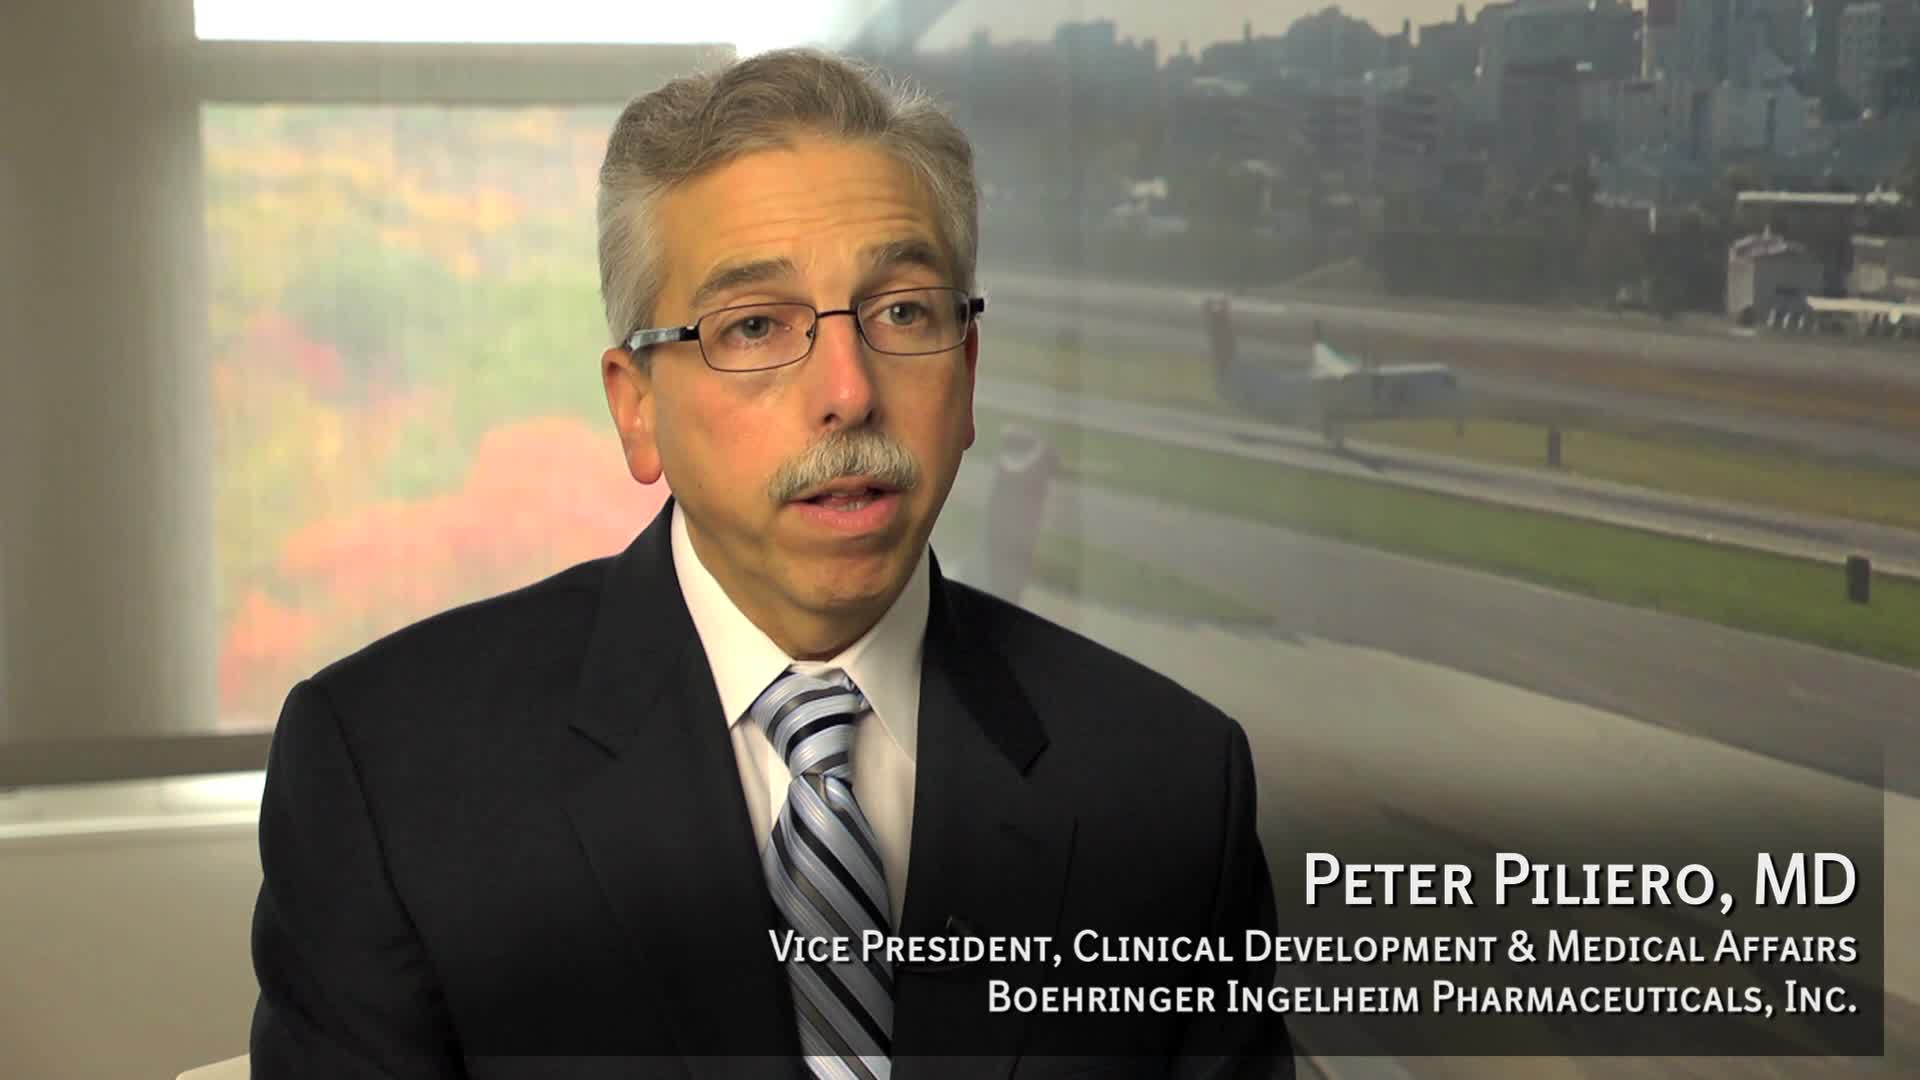 Dr. Pete Piliero, Boehringer Ingelheim, discusses Phase I trial results of BI695501, its biosimilar candidate to adalimumab.